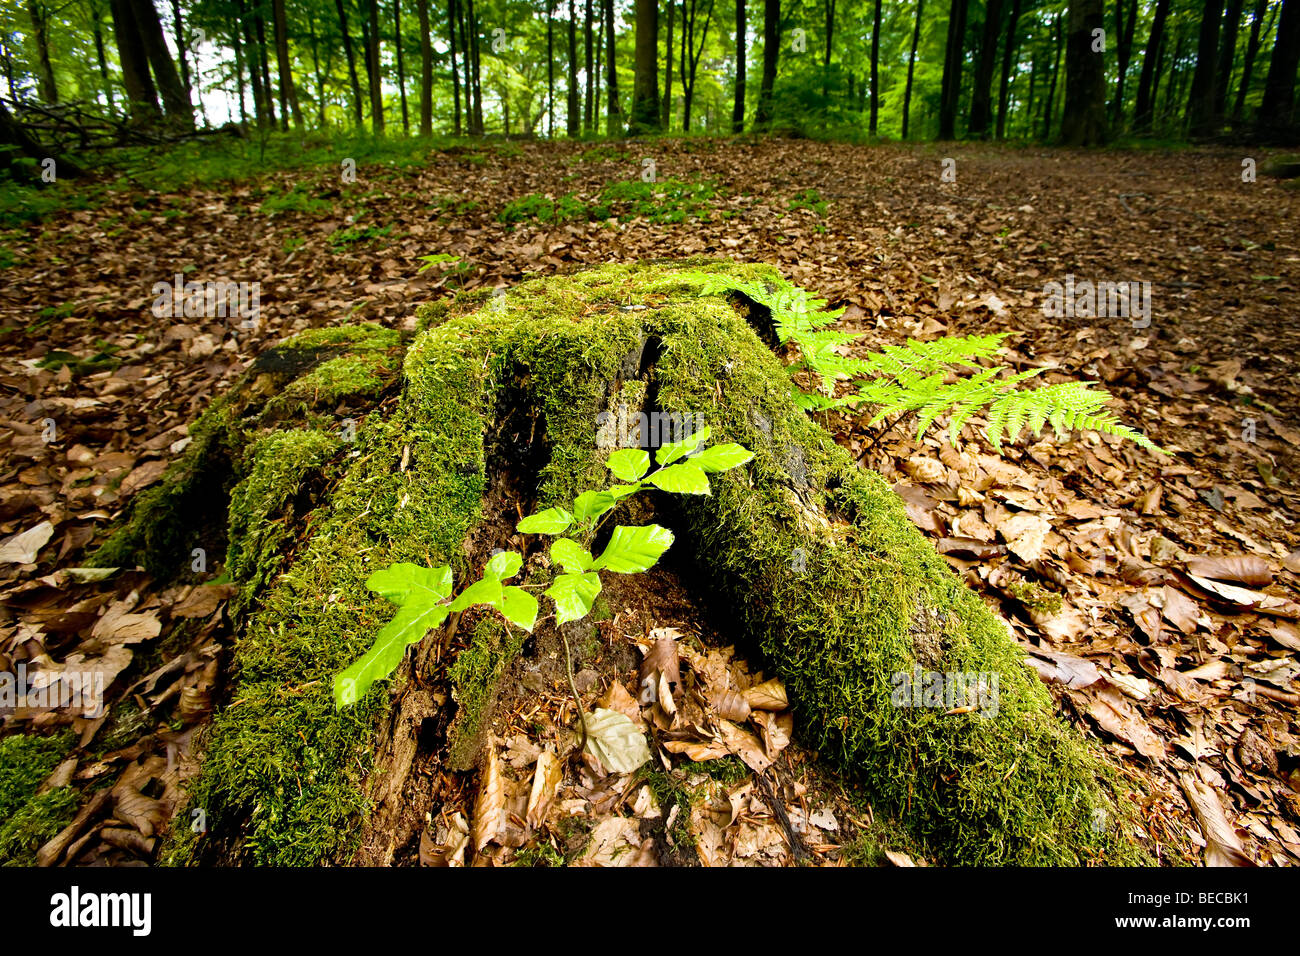 baum stub auf dem waldboden stockfoto bild 26088133 alamy. Black Bedroom Furniture Sets. Home Design Ideas